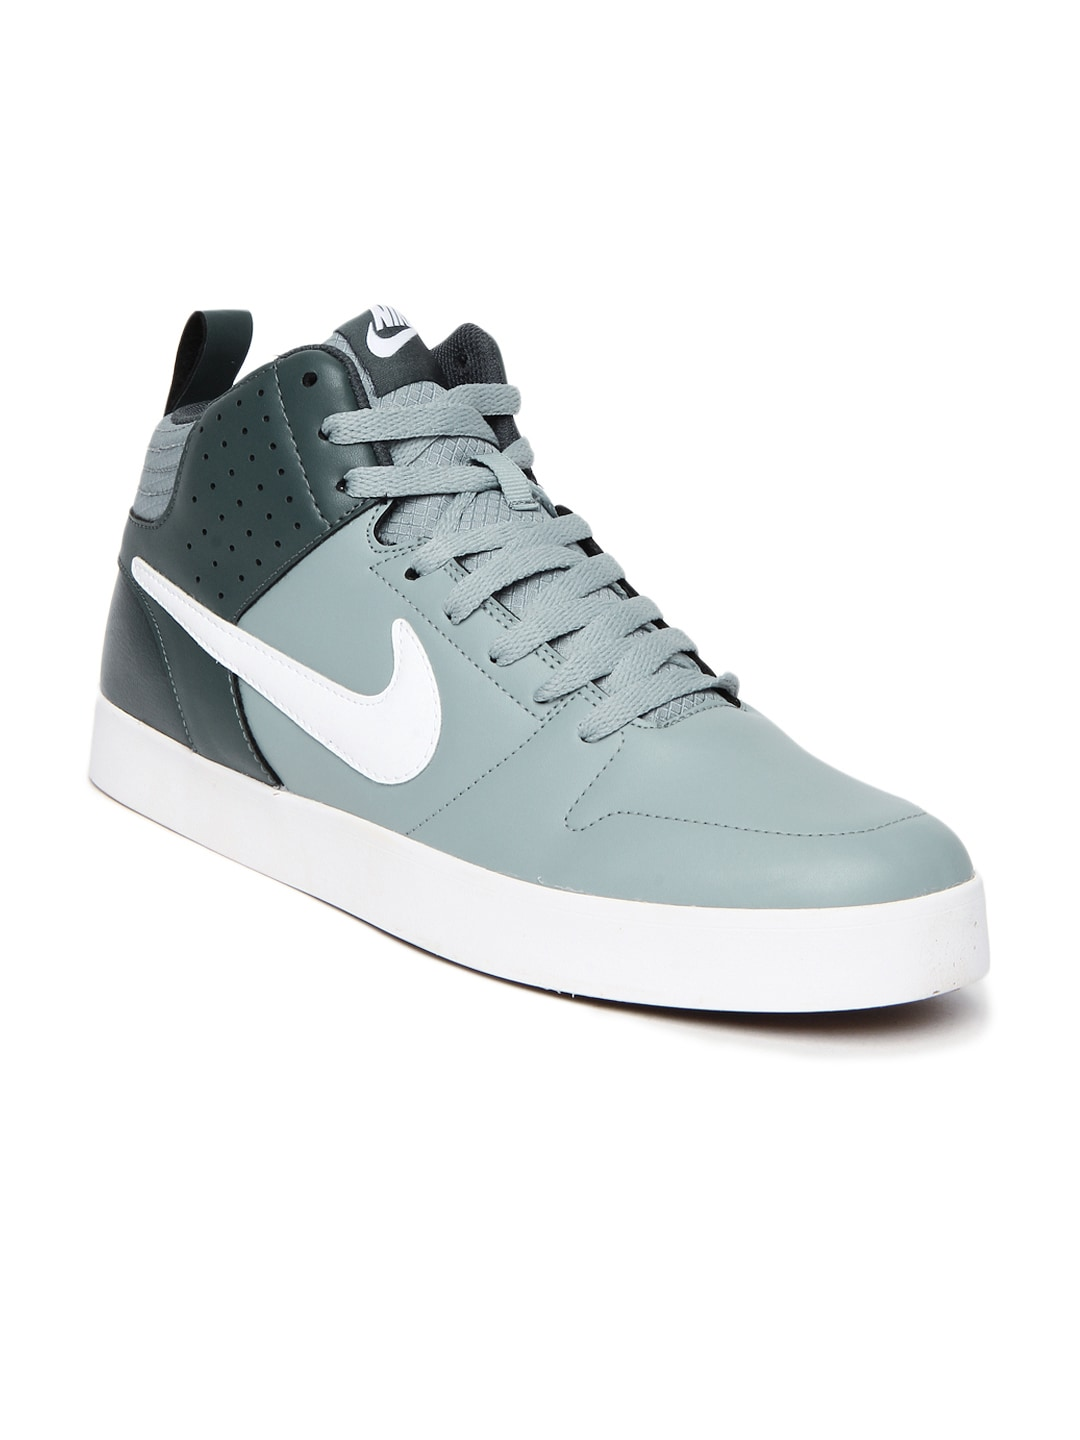 promo code 92728 8d020 Nike Gold Lifestyle & Sneaker Shoes .